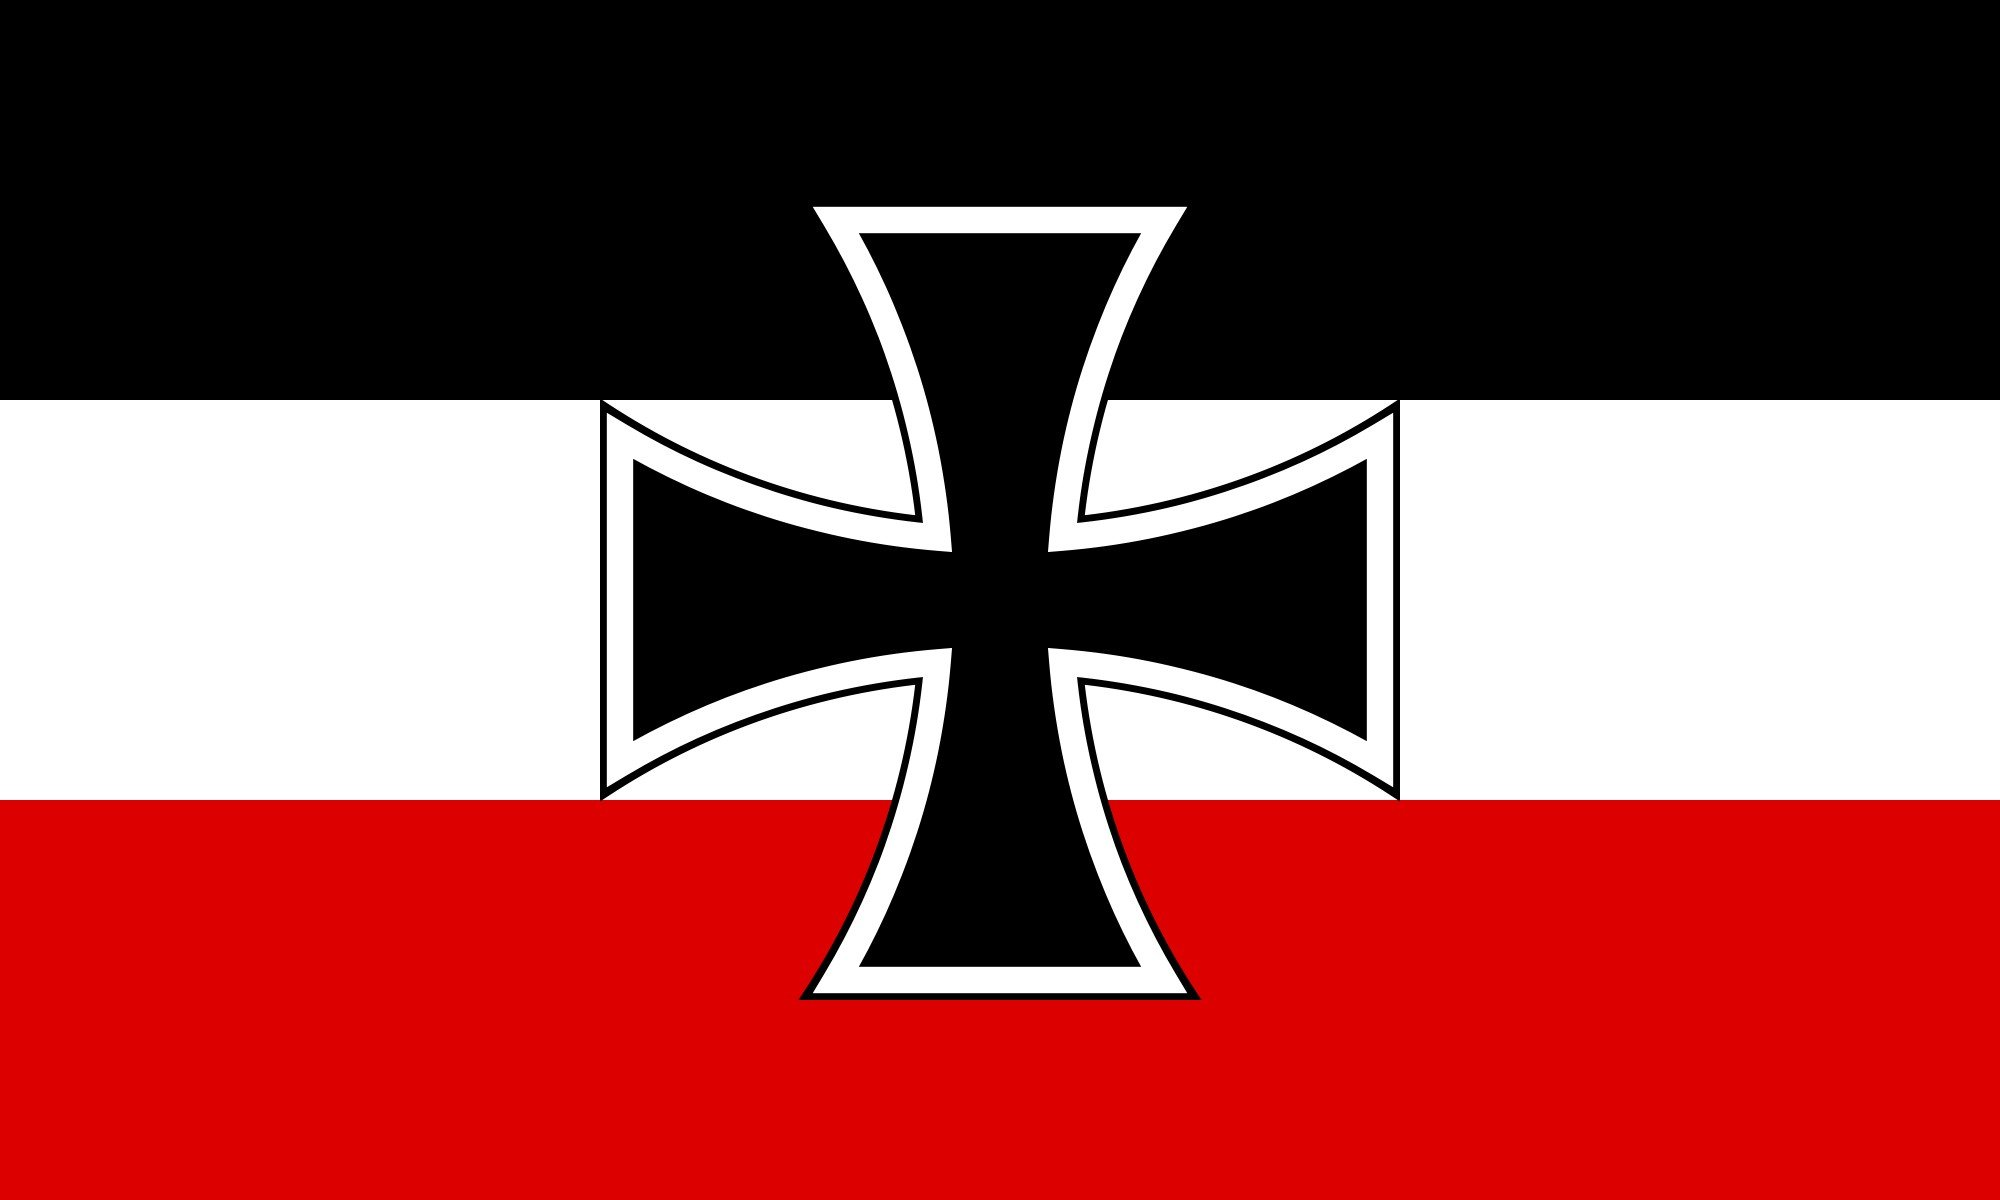 an analysis of the fall of weimar republic in germany and its effects on the welfare of german peopl Explaining its knock-on effects into with iran to limit its nuclear program before a german government plane packed under the weimar republic.